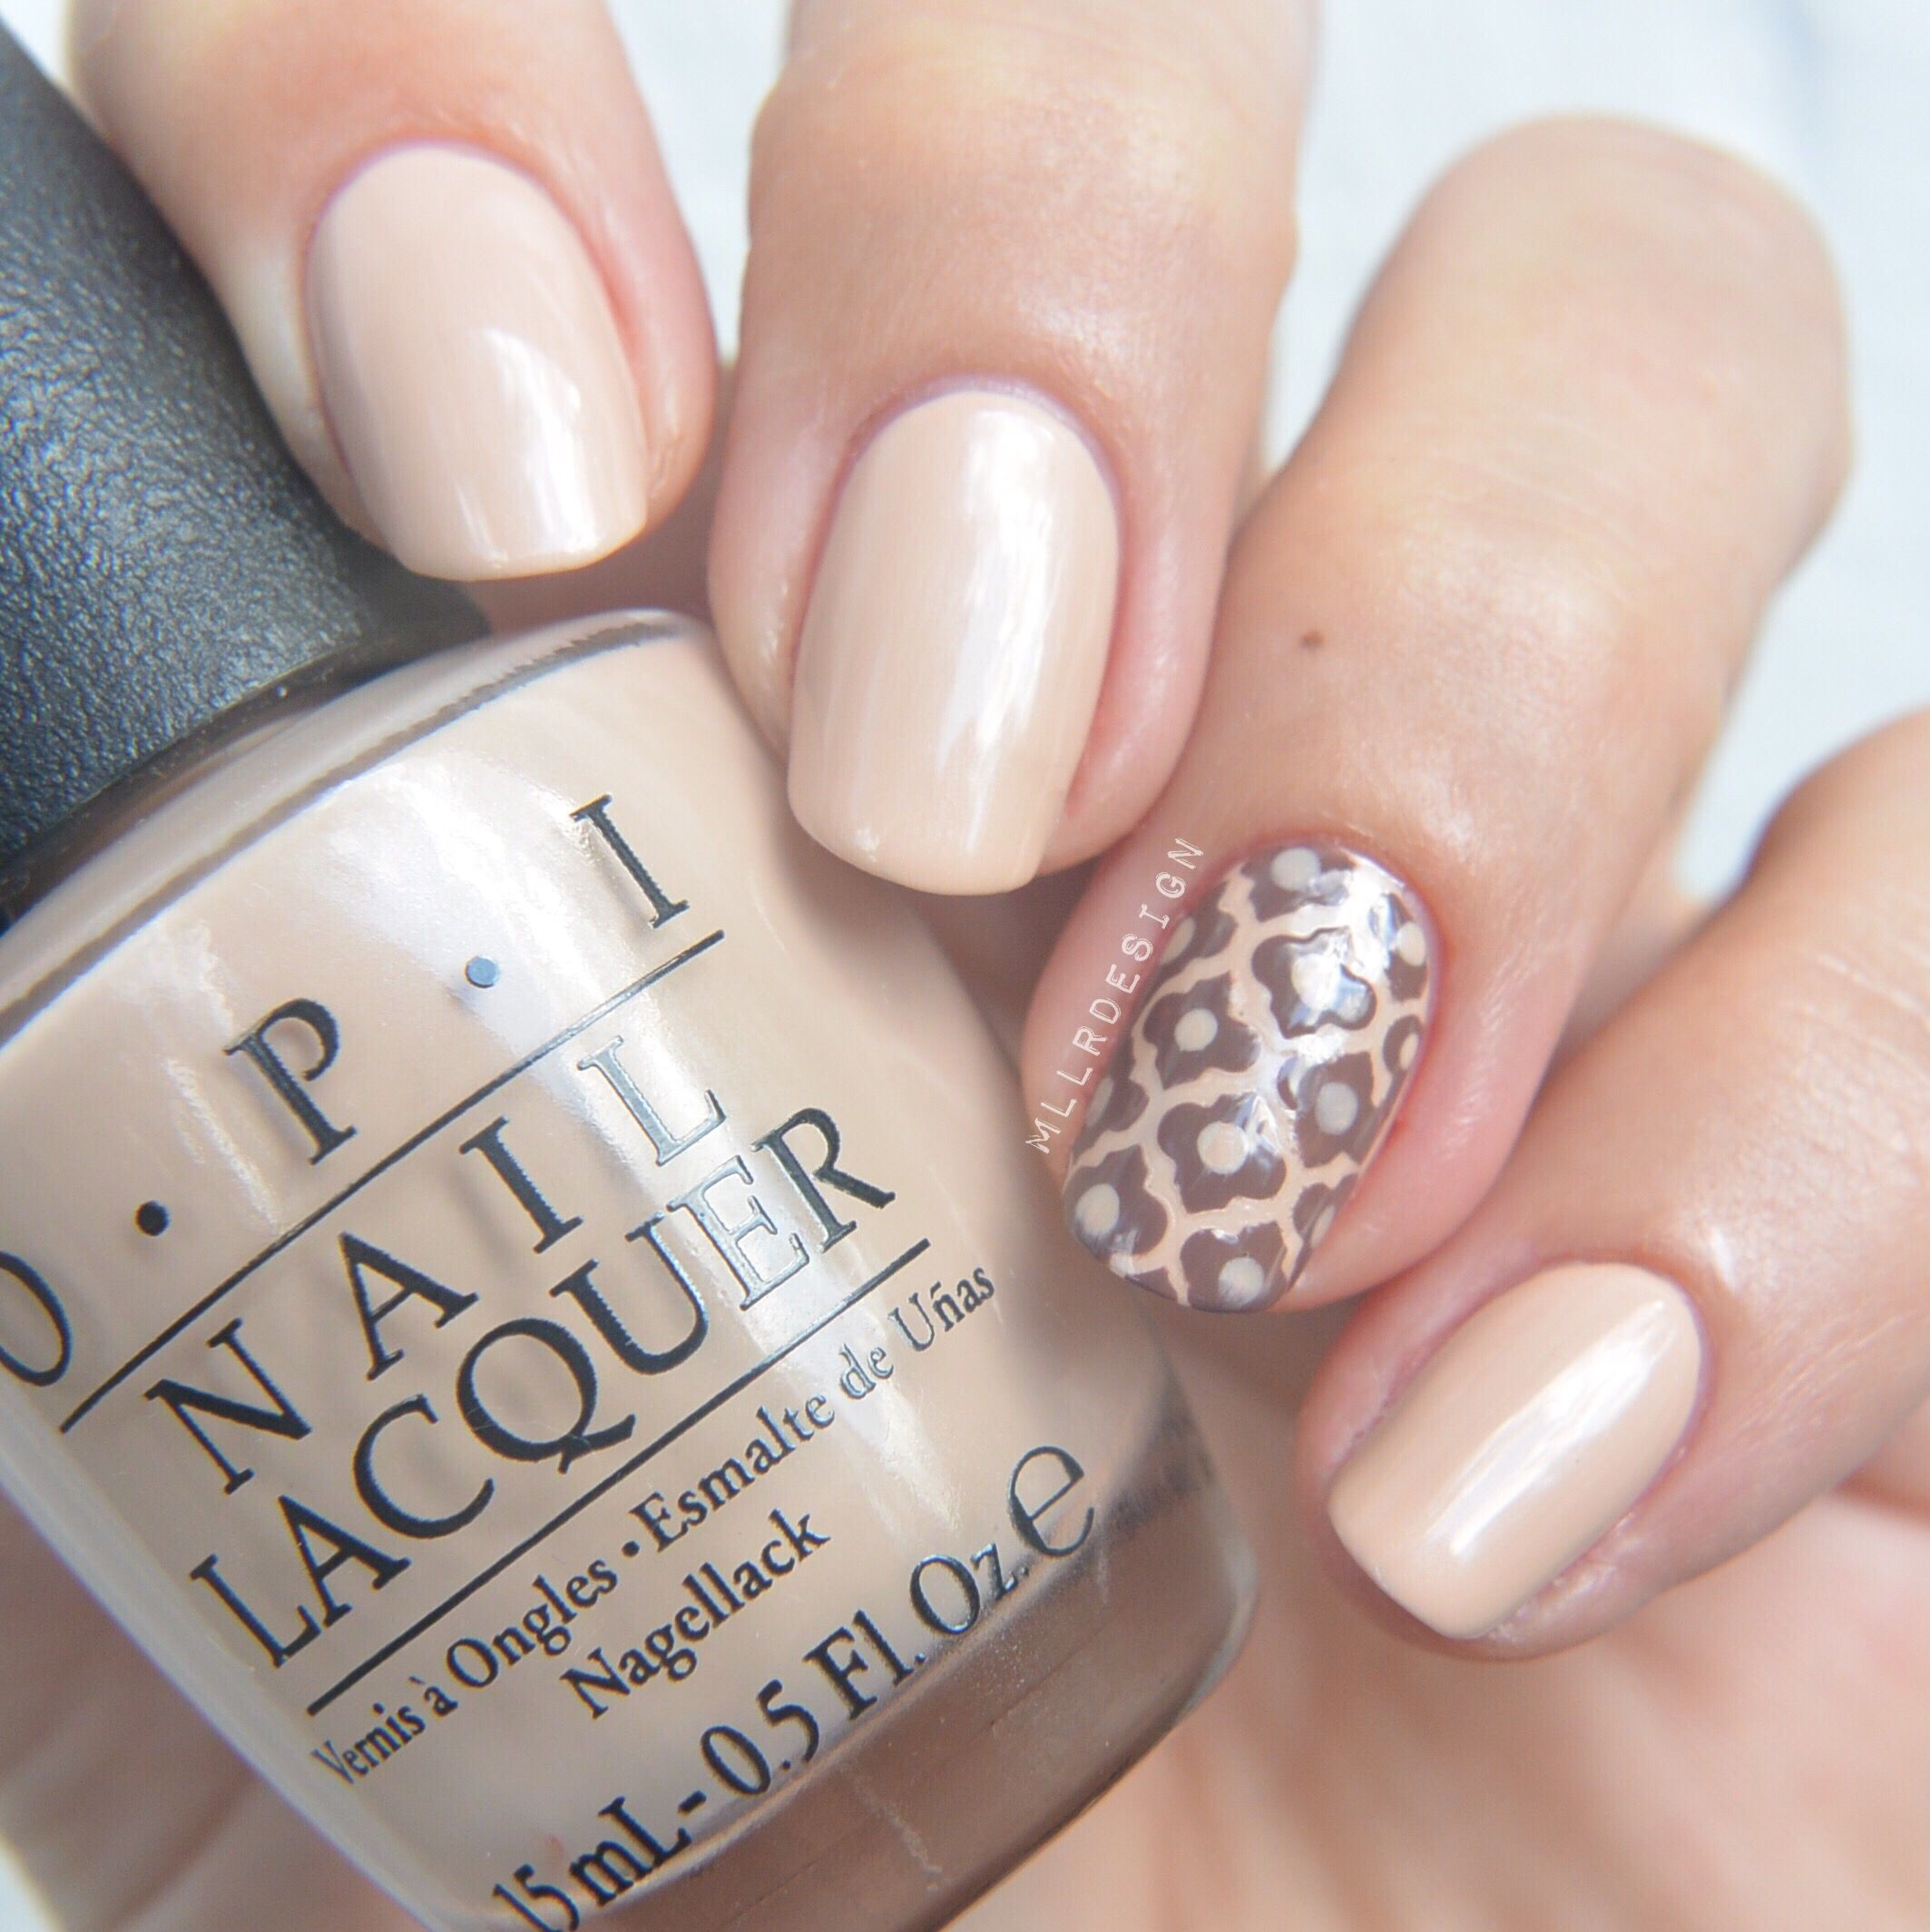 OPI PALE TO THE CHIEF   nails   Pinterest   OPI